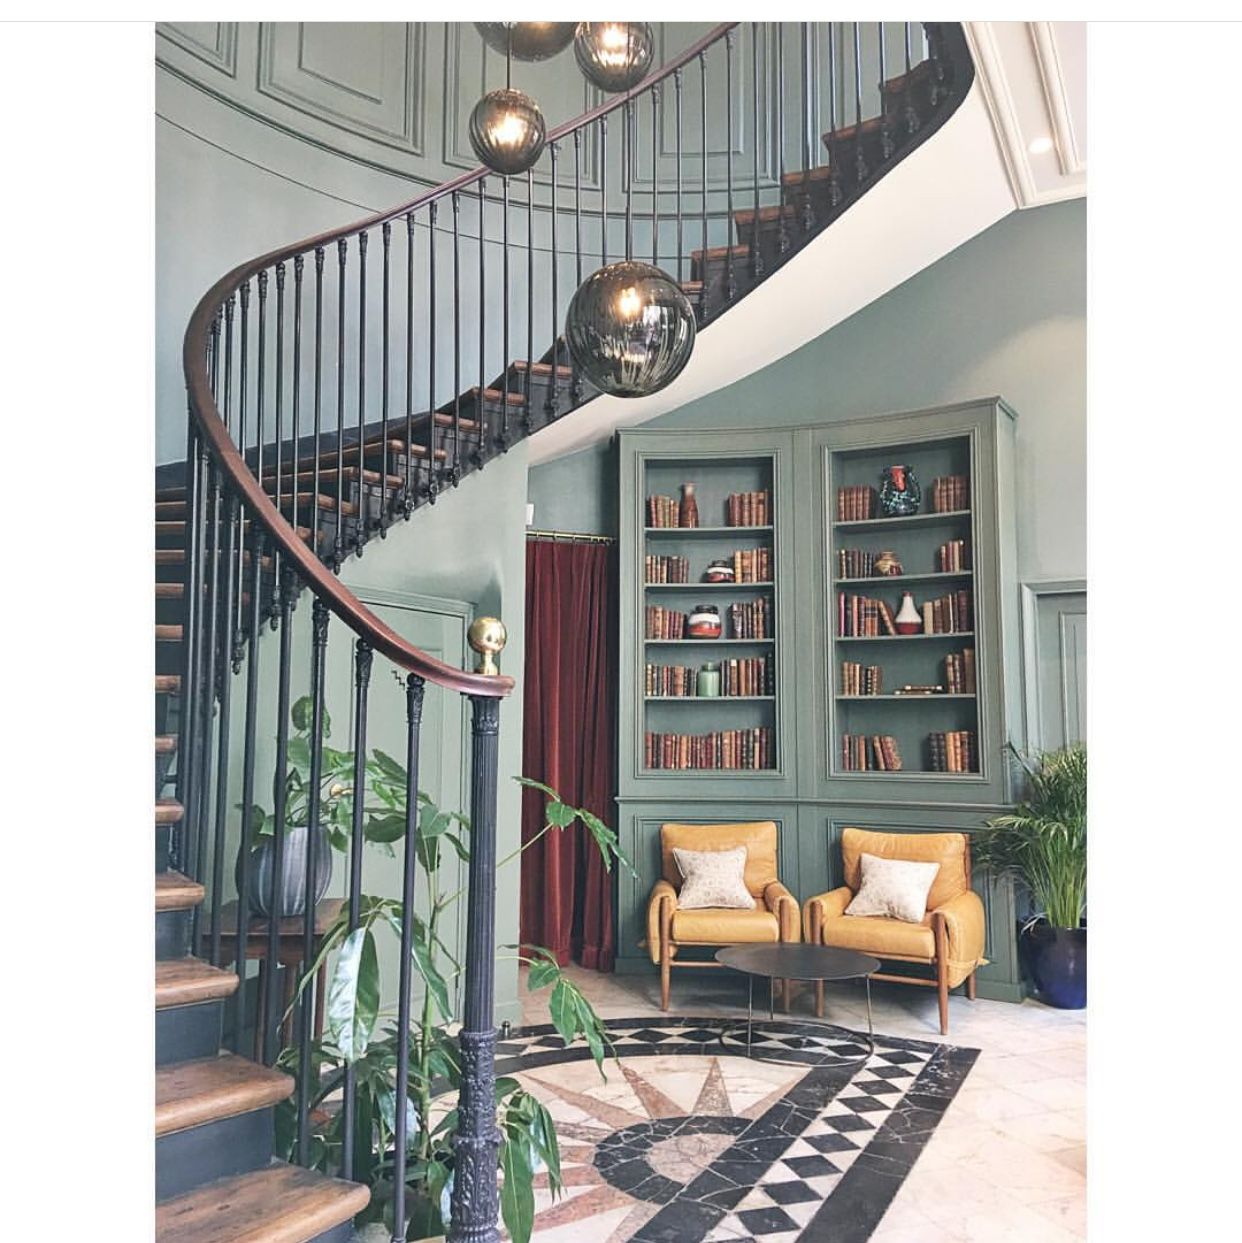 Staircase Hotel hoxton, Paris hotels, Hotel